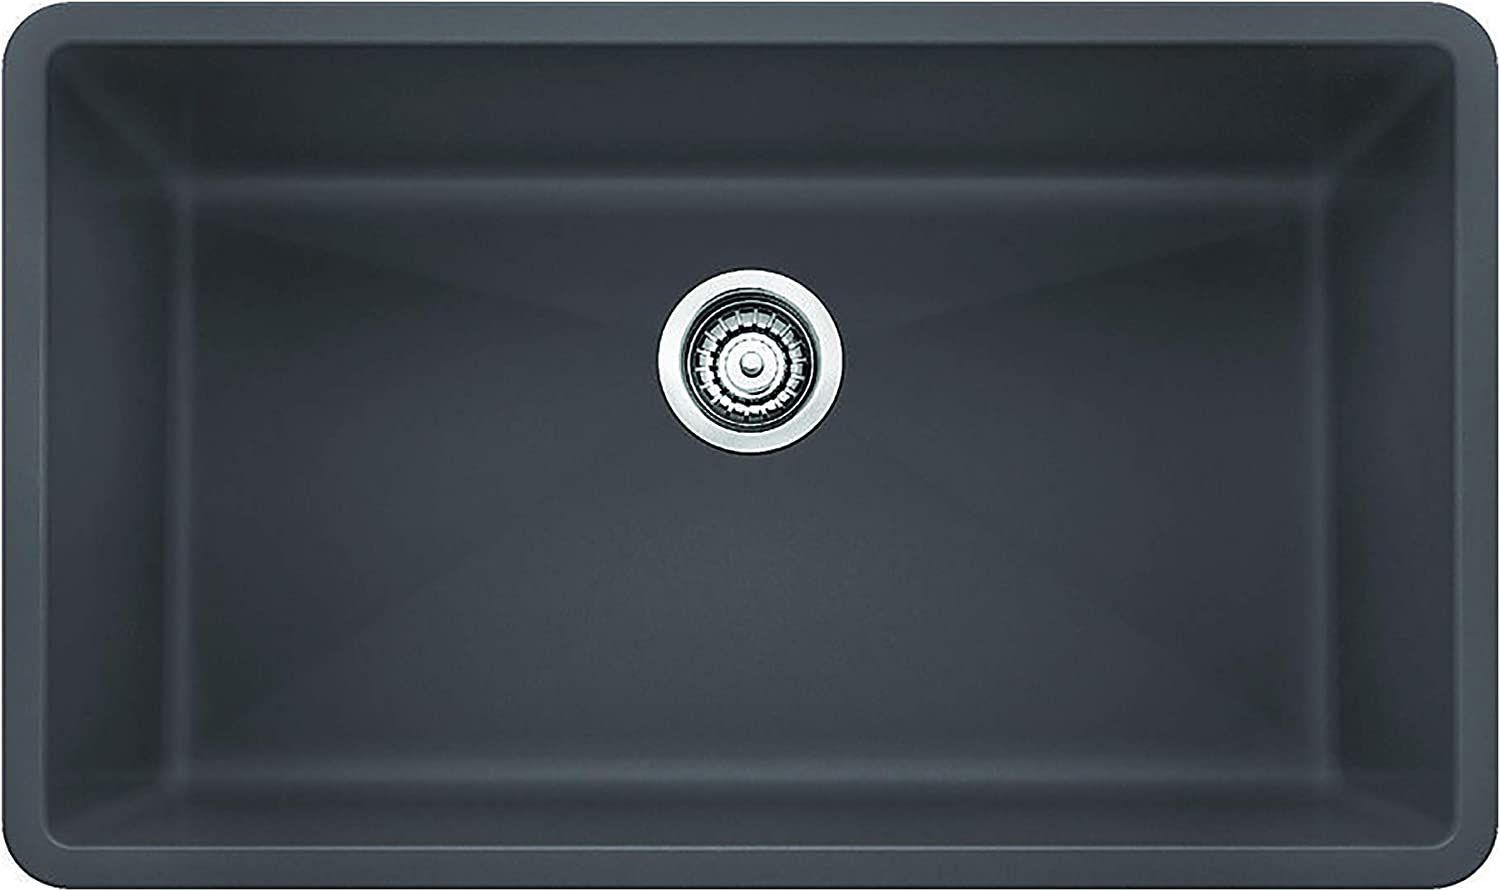 Blanco 441478, Cinder PRECIS SILGRANIT Undermount Kitchen Sink, 9.50 x 19.00 x 32.00 inches